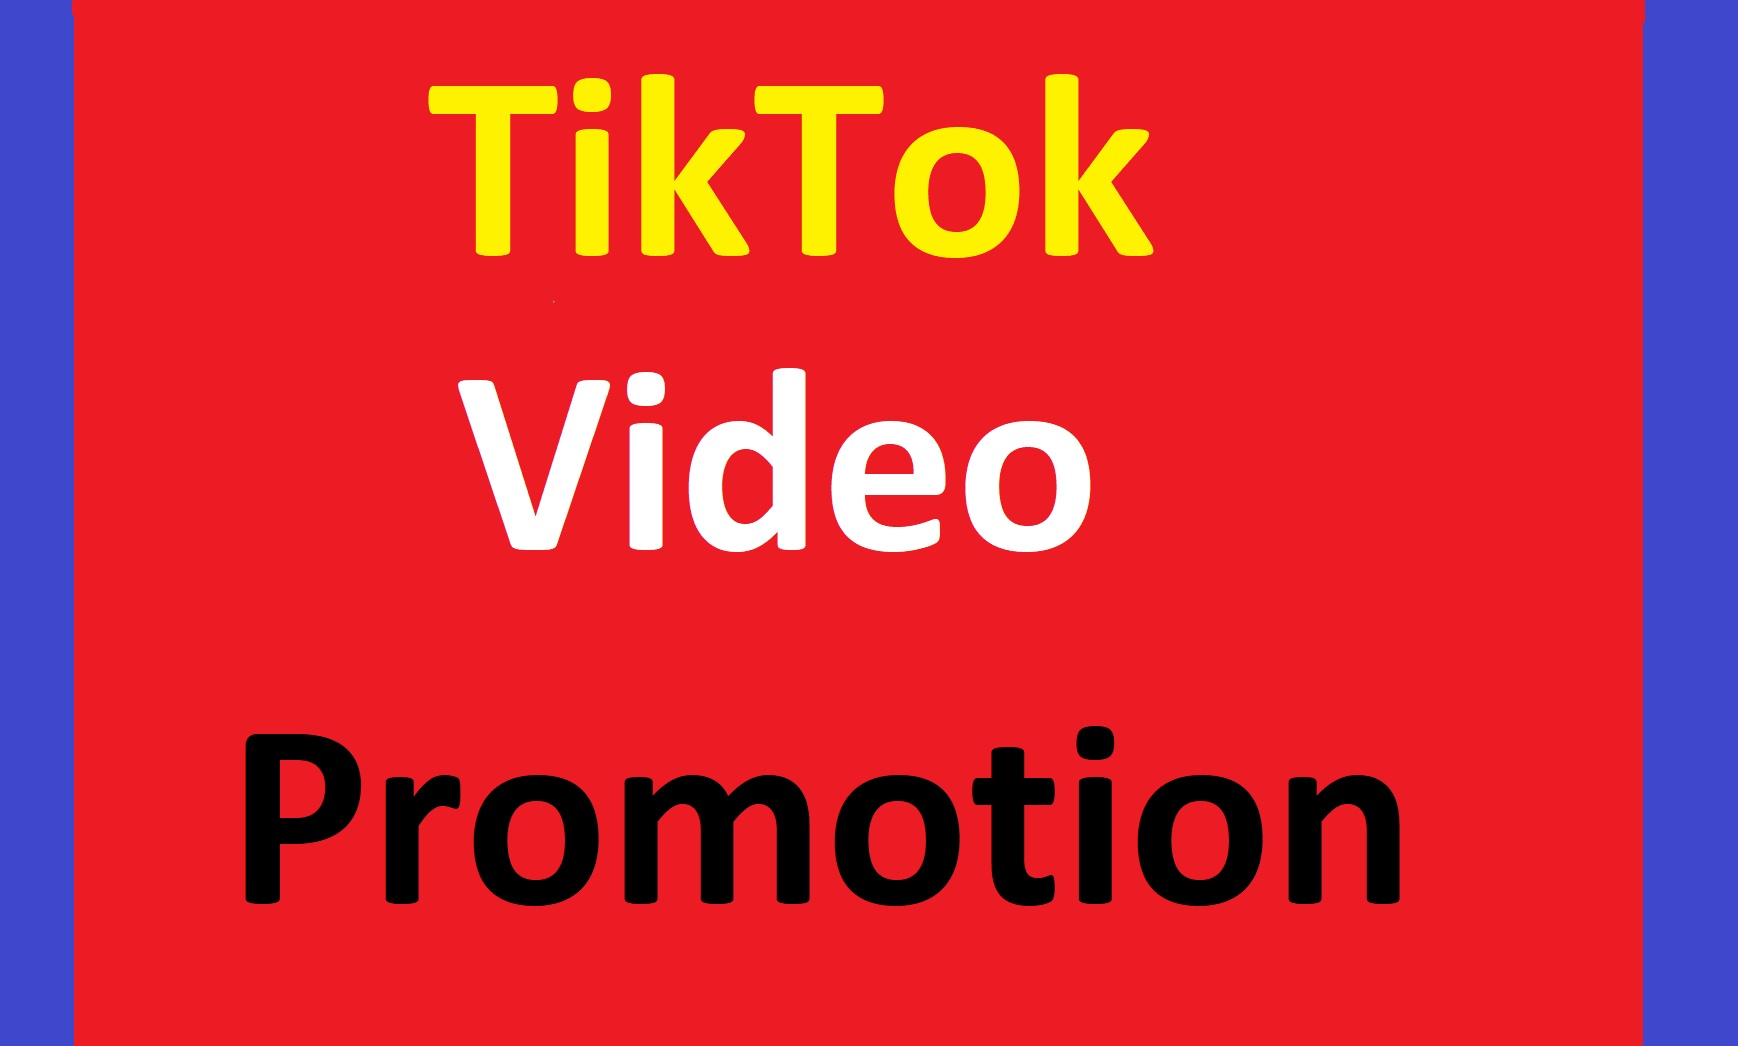 Tik tok Video and account promotion. Tiktok all users Come Here Fast.